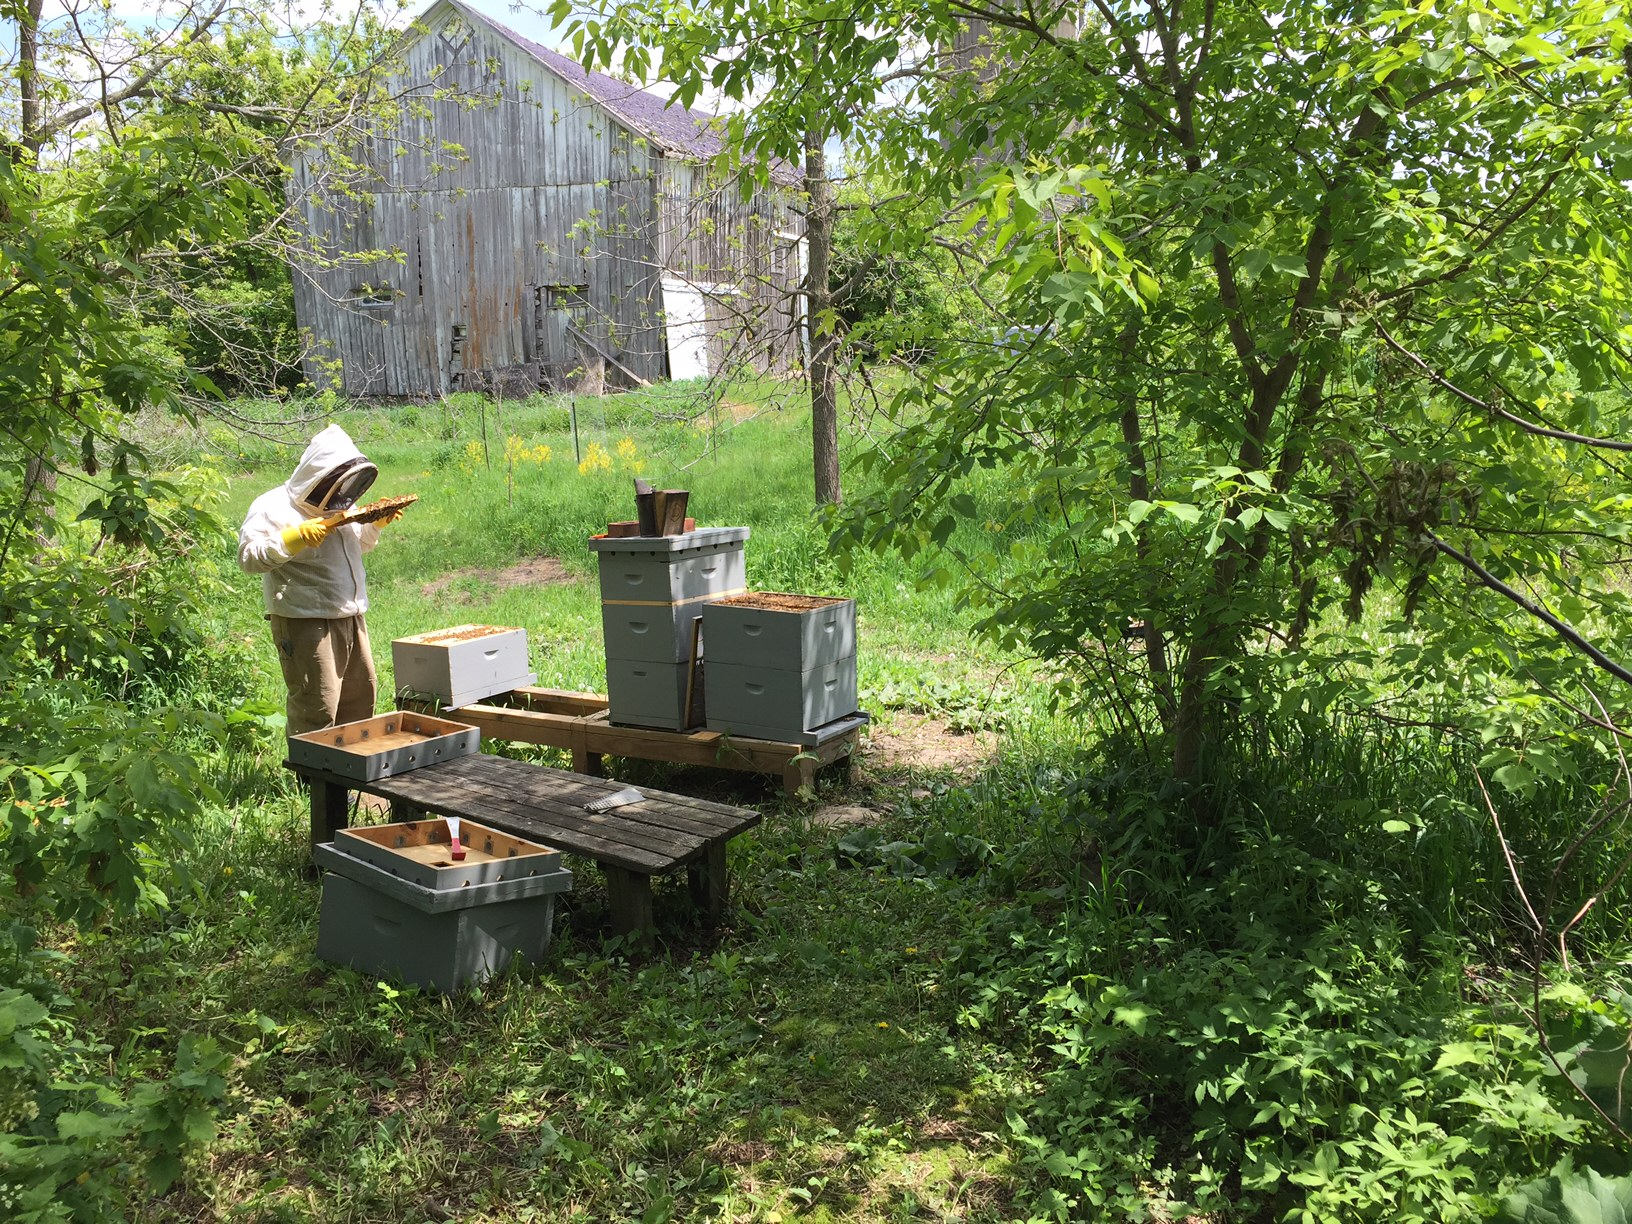 Artificial swarm honey bees, Homestead Monthly: May 2016 {mushroom growing, bee swarms, and homestead loss} | Whole-Fed Homestead